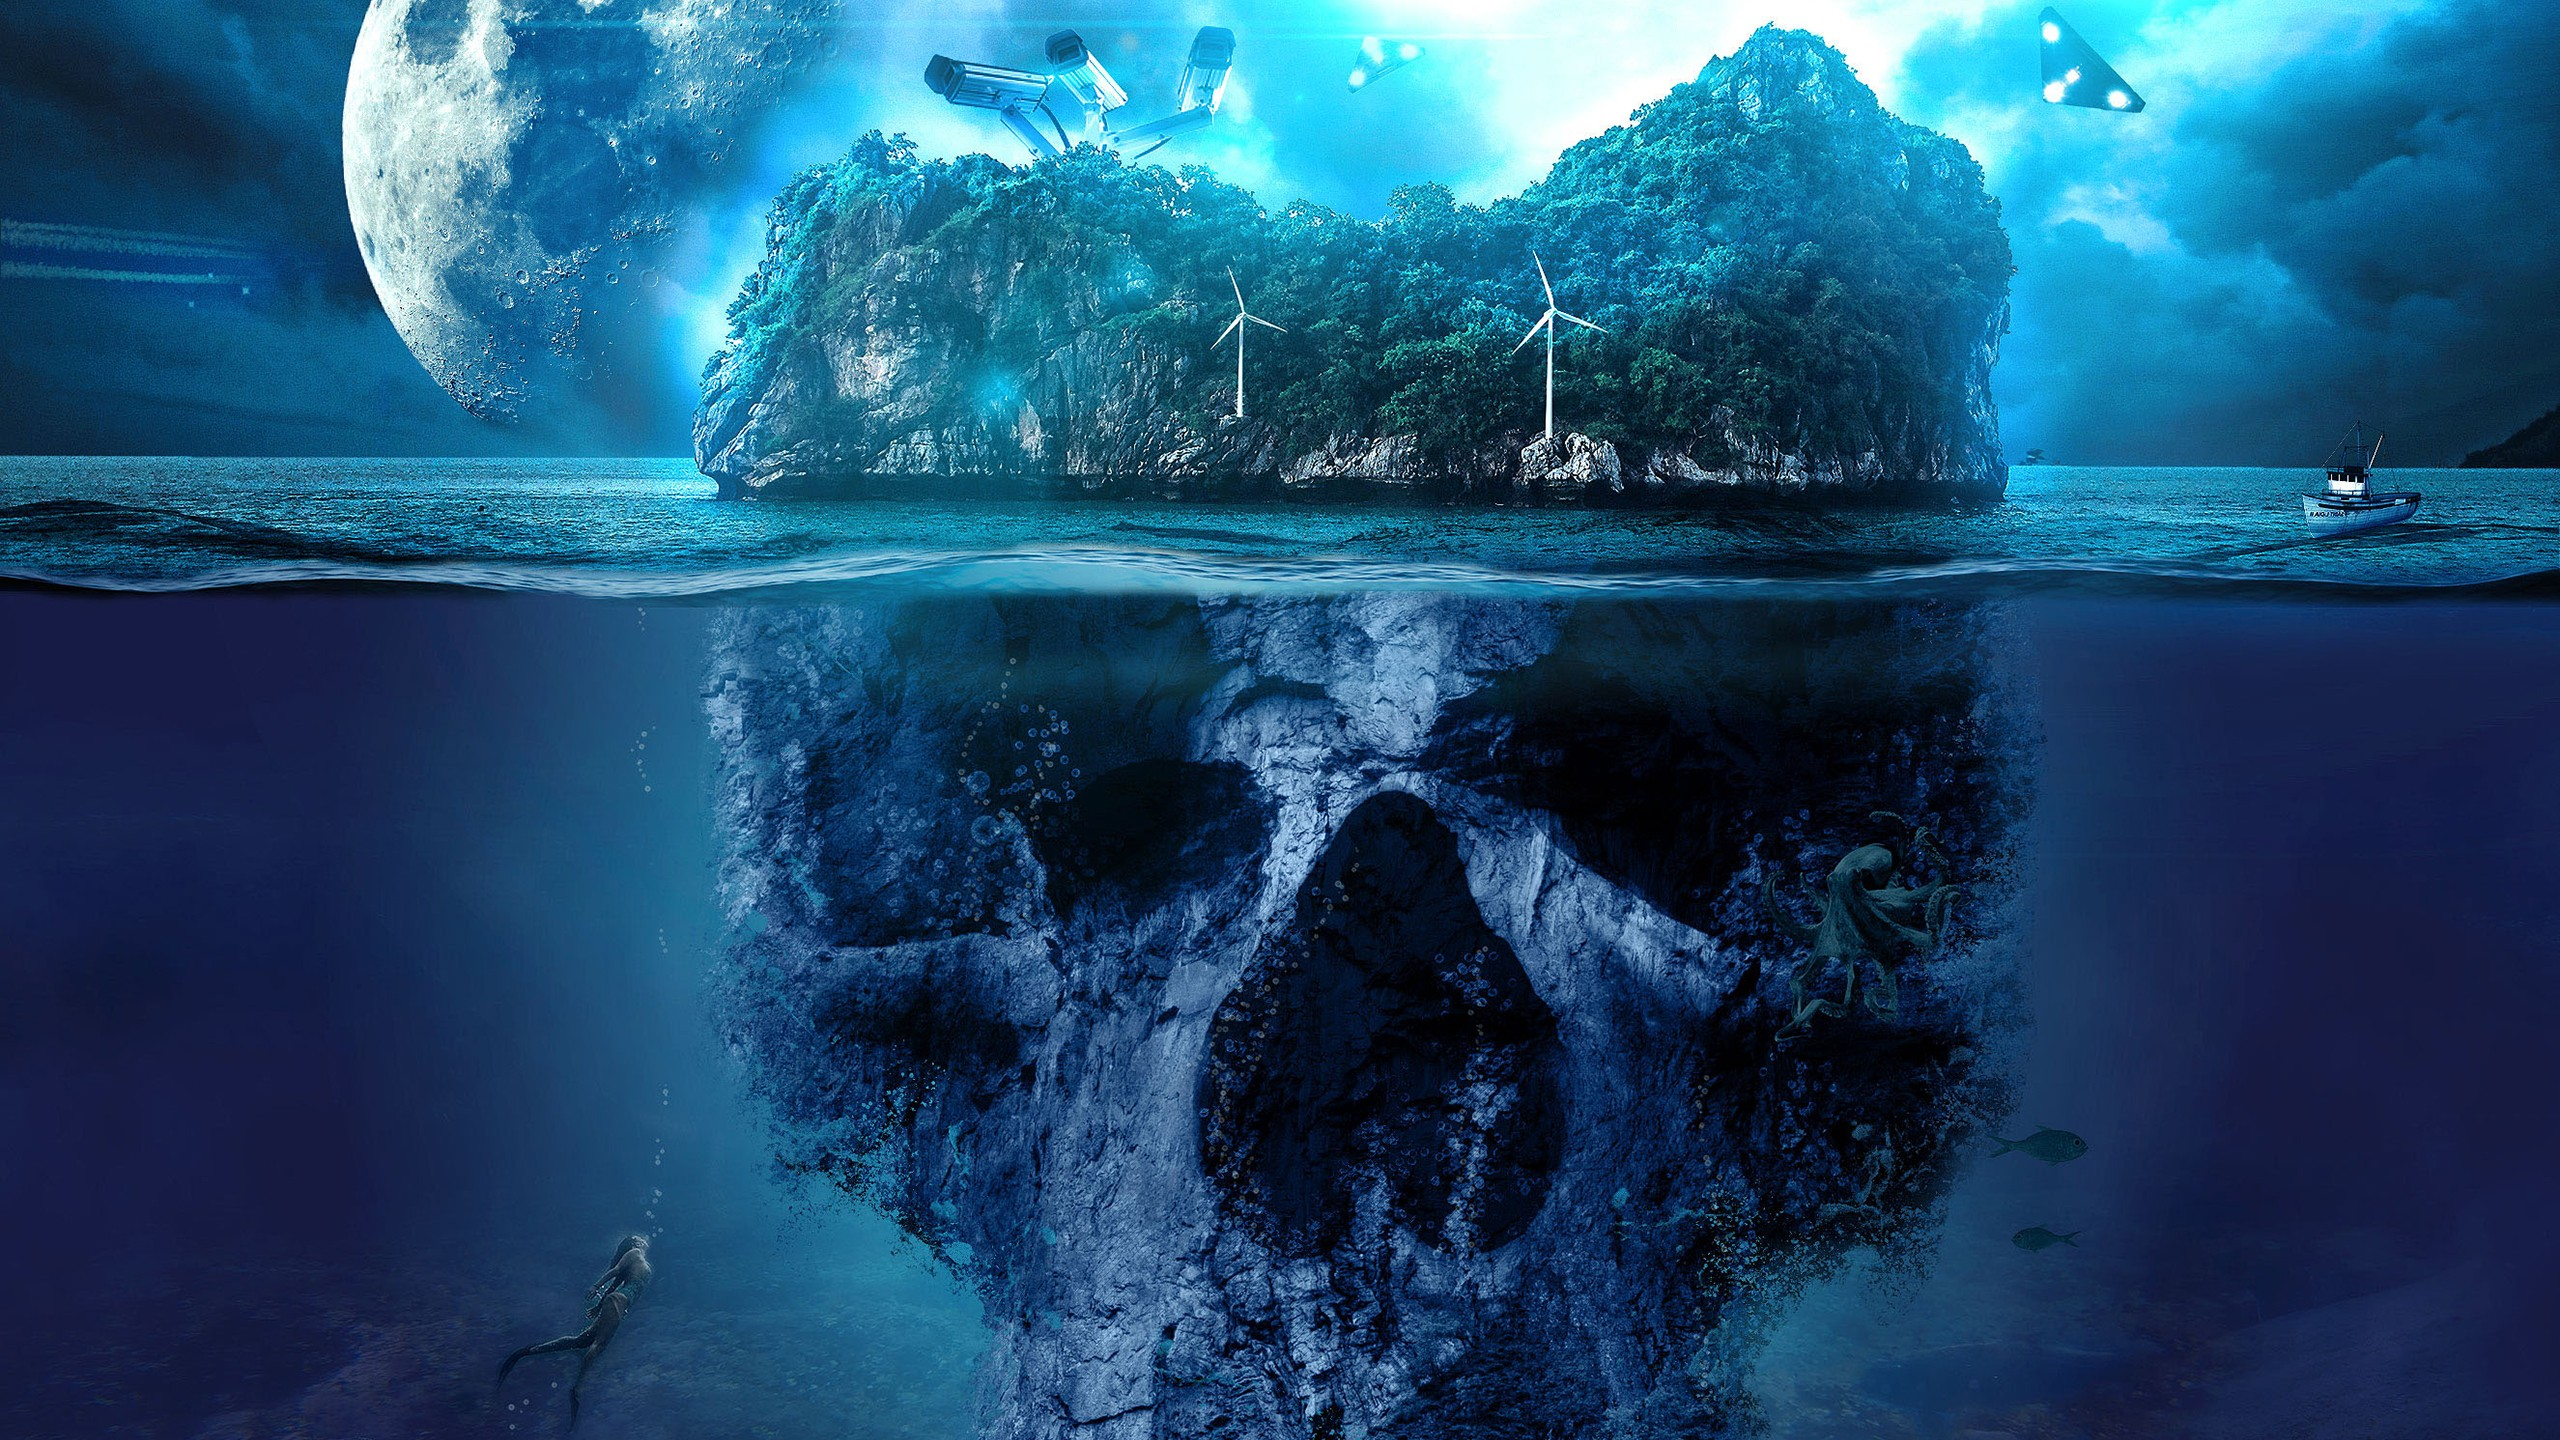 4k Ultra Hd Wallpapers Mystery Skull Island Wallpapers Hd Wallpapers Id 27263